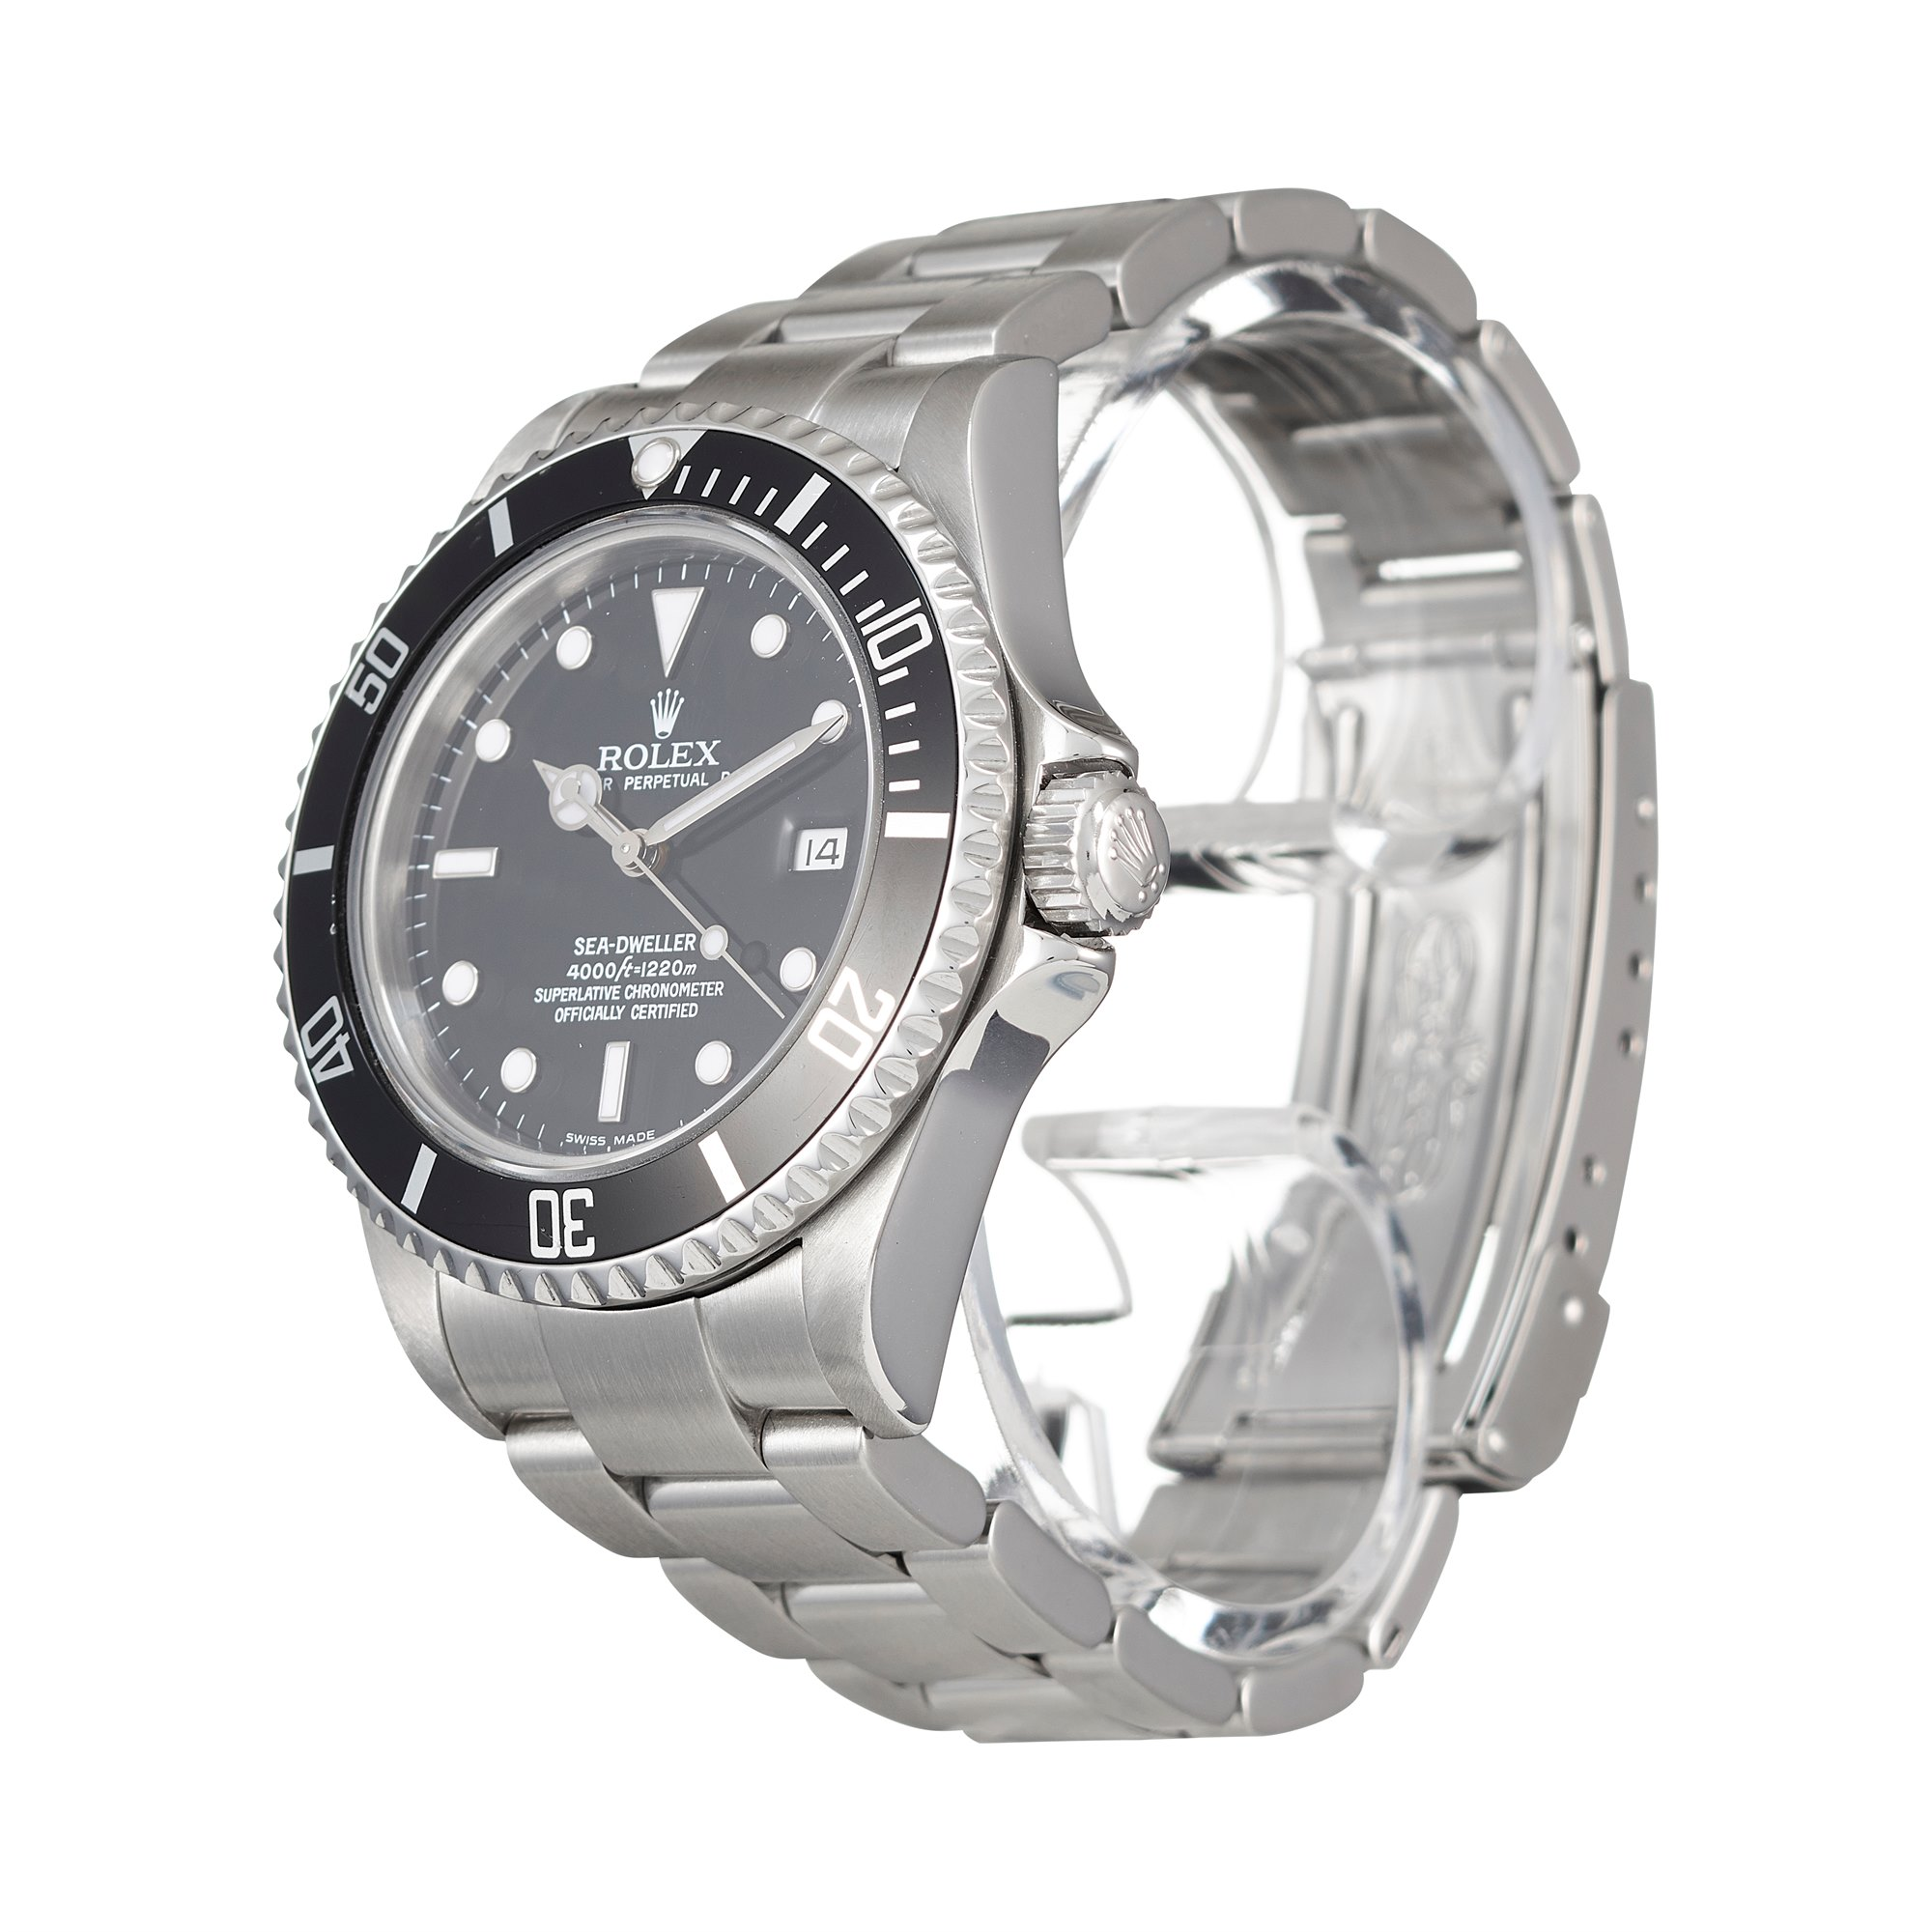 Rolex Sea-Dweller Stainless Steel 16600